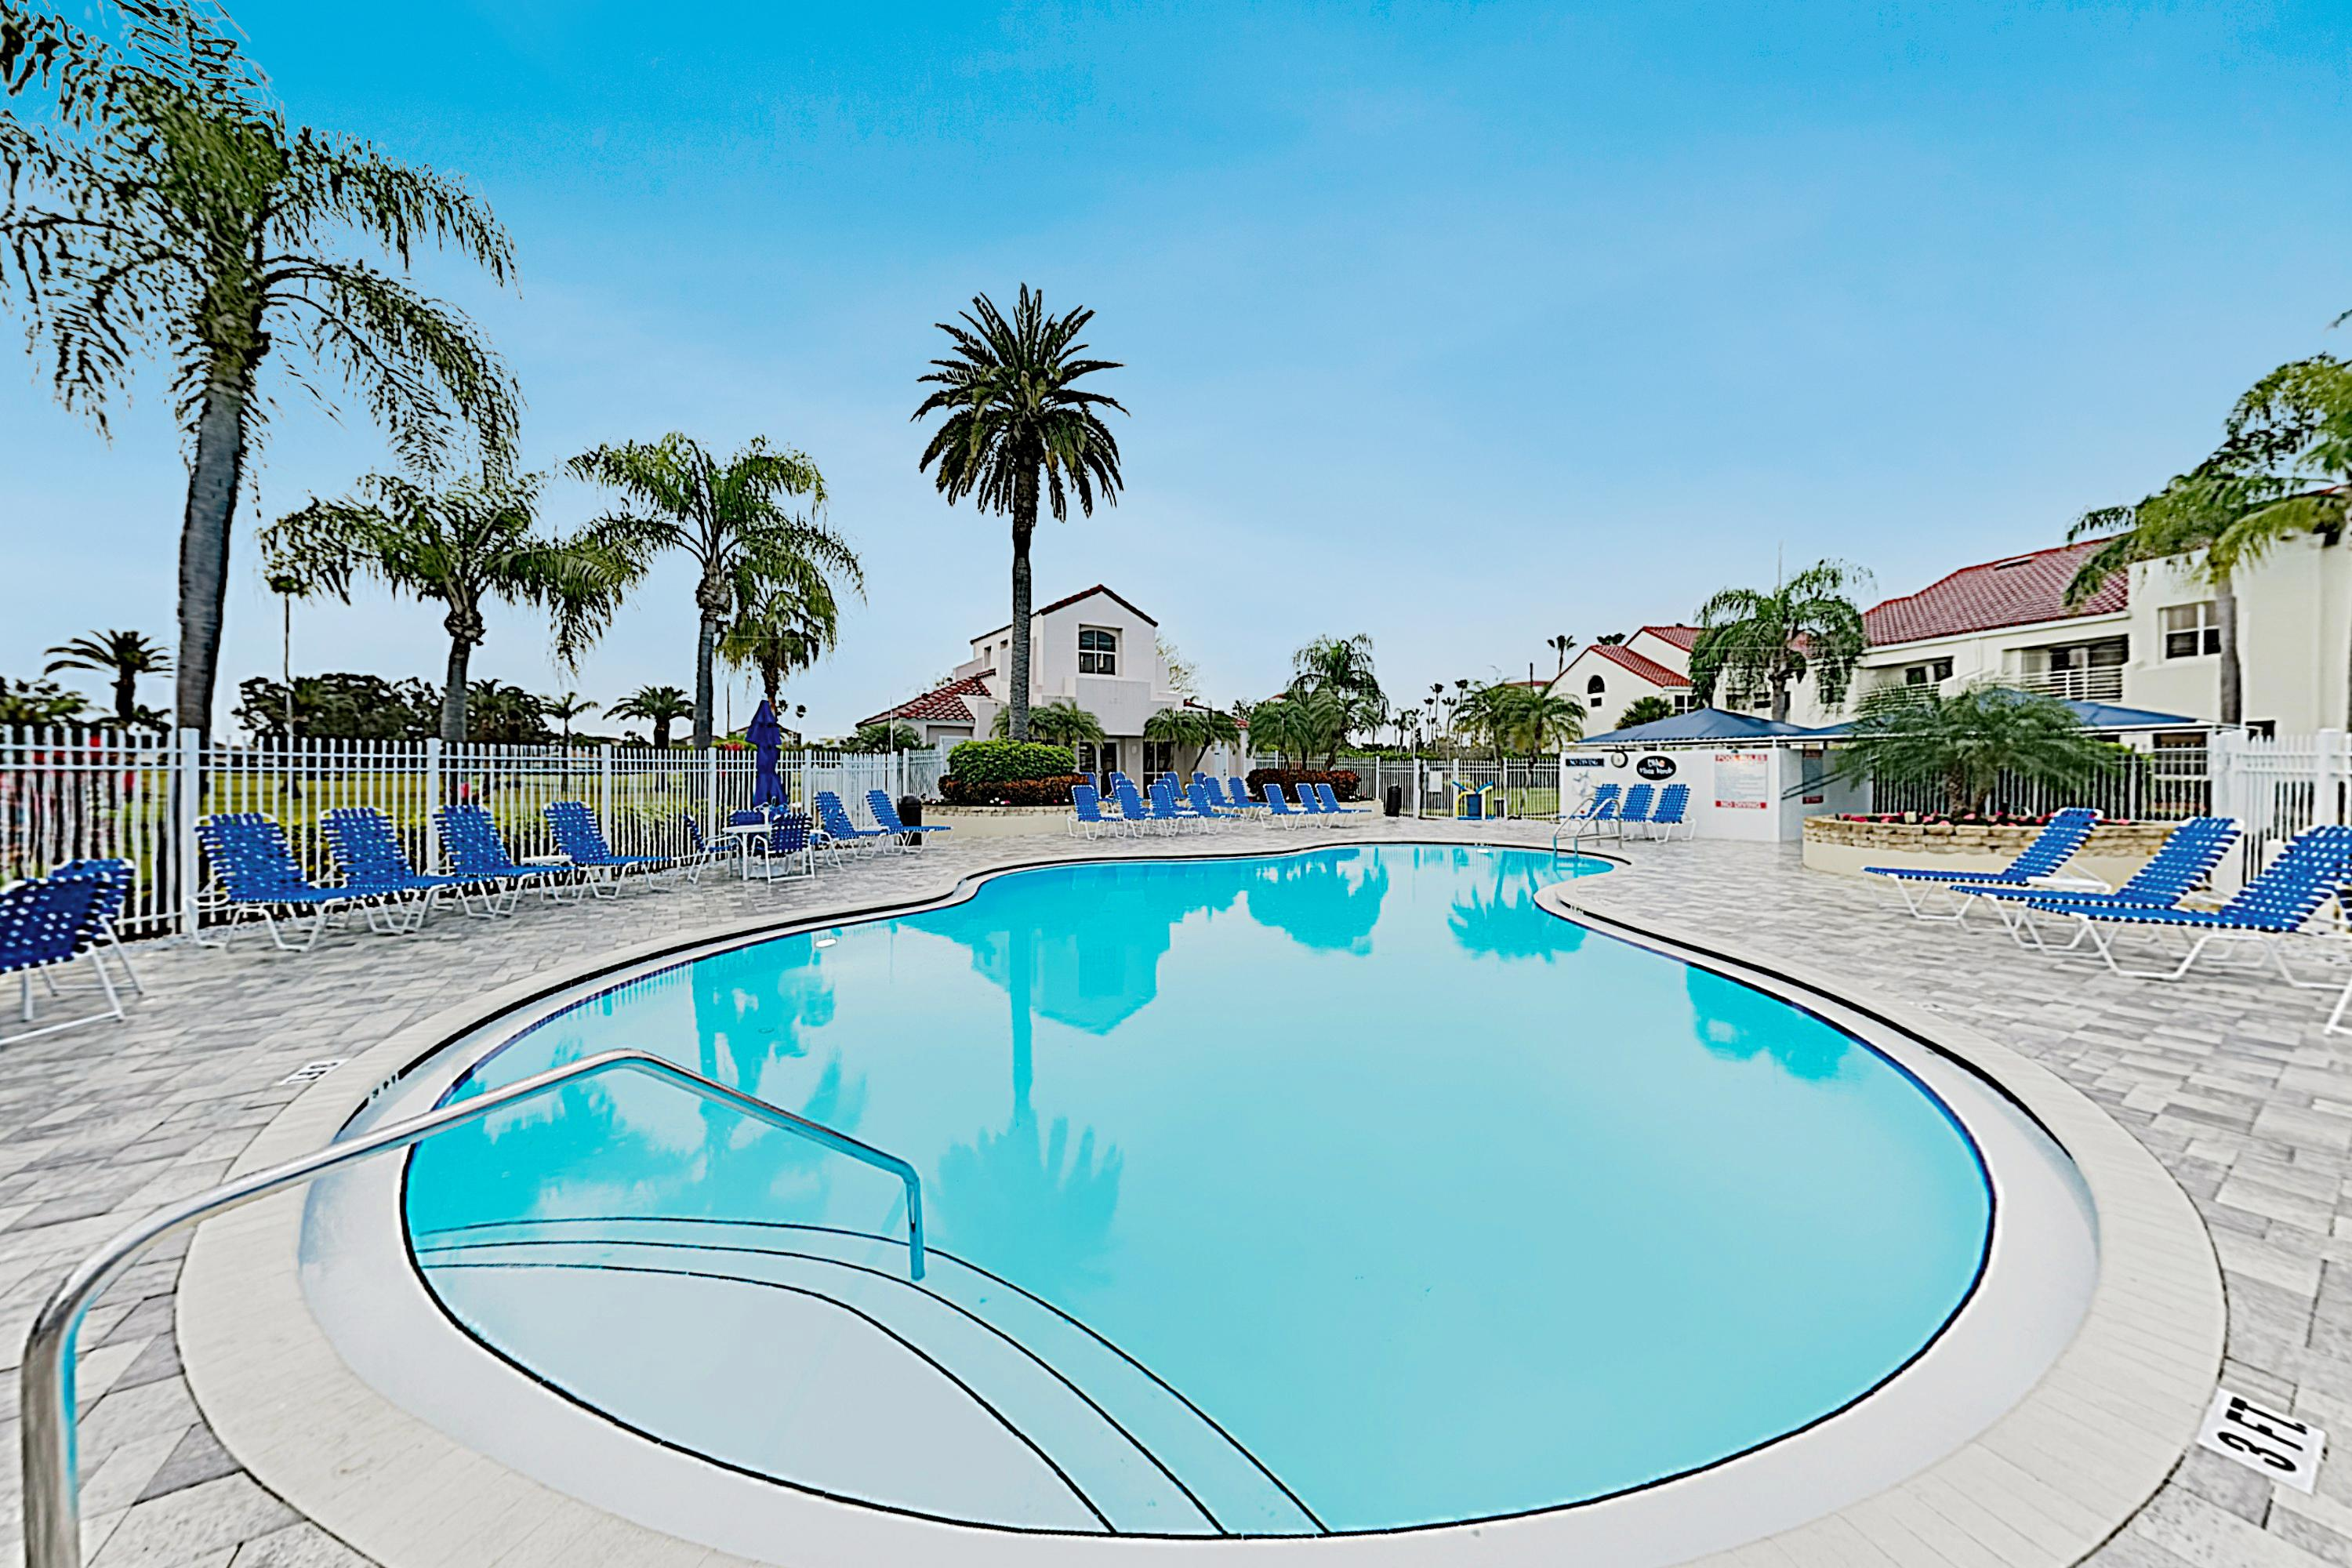 Spend leisurely days by the community pool.